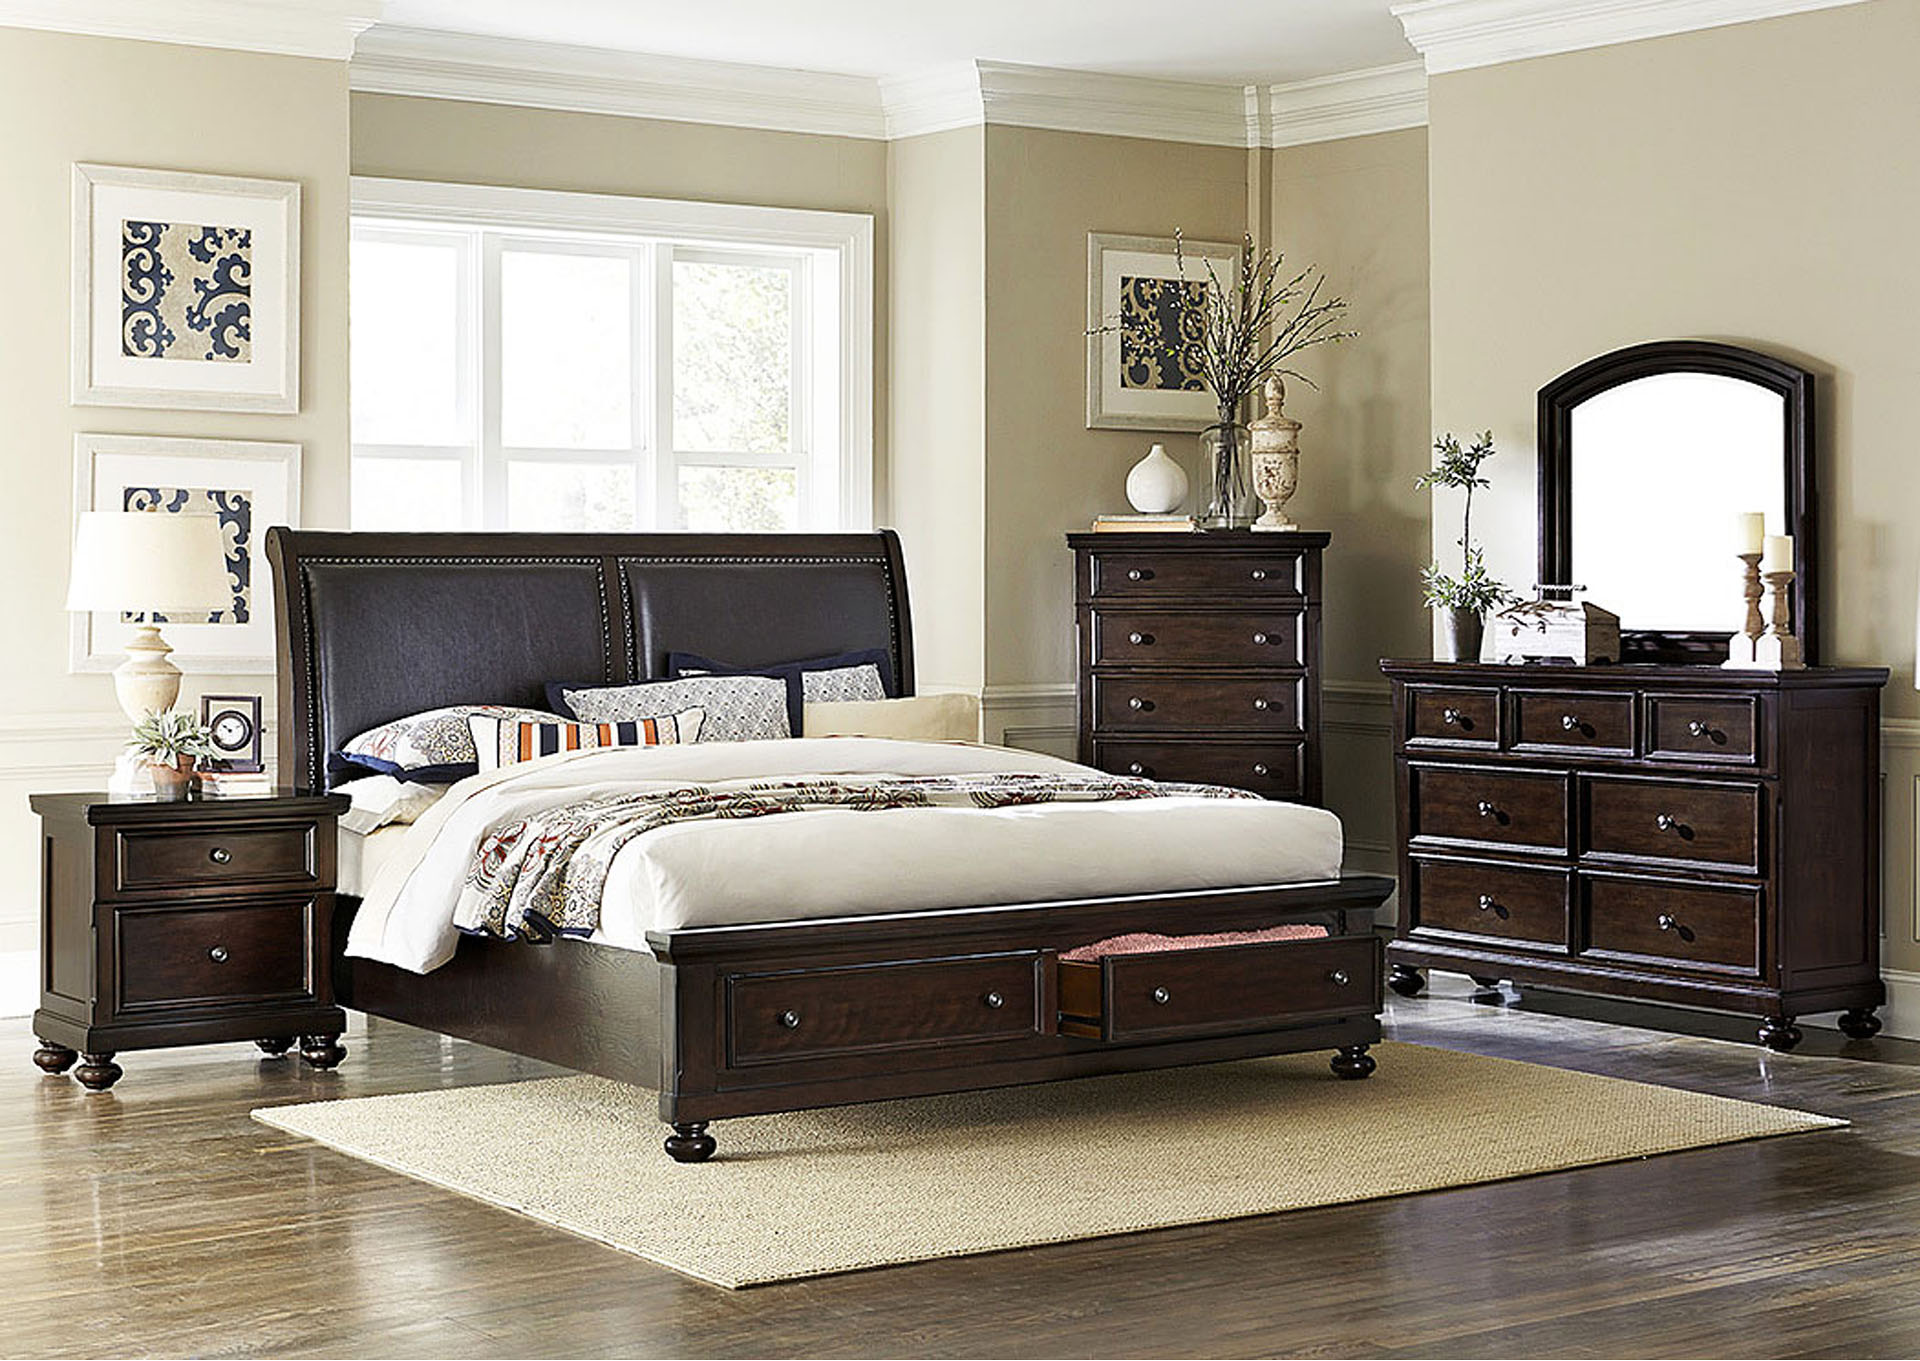 Faust Dark Cherry Queen Platform Storage Bed,Homelegance